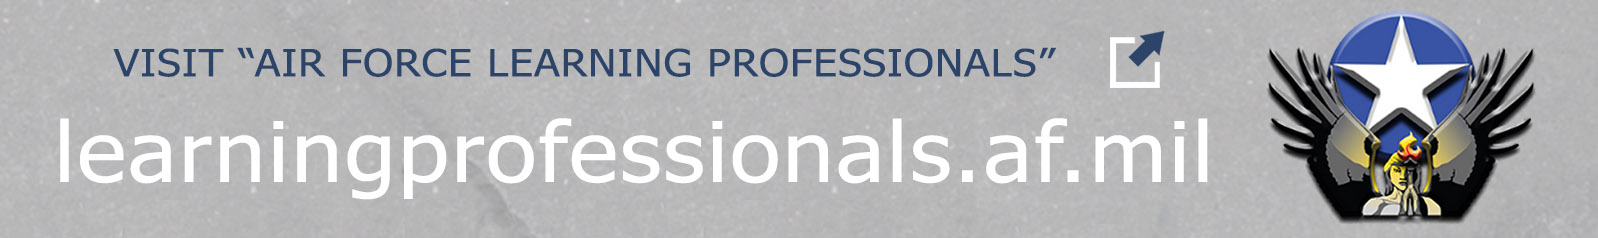 Air Force Learning Professionals Banner link.